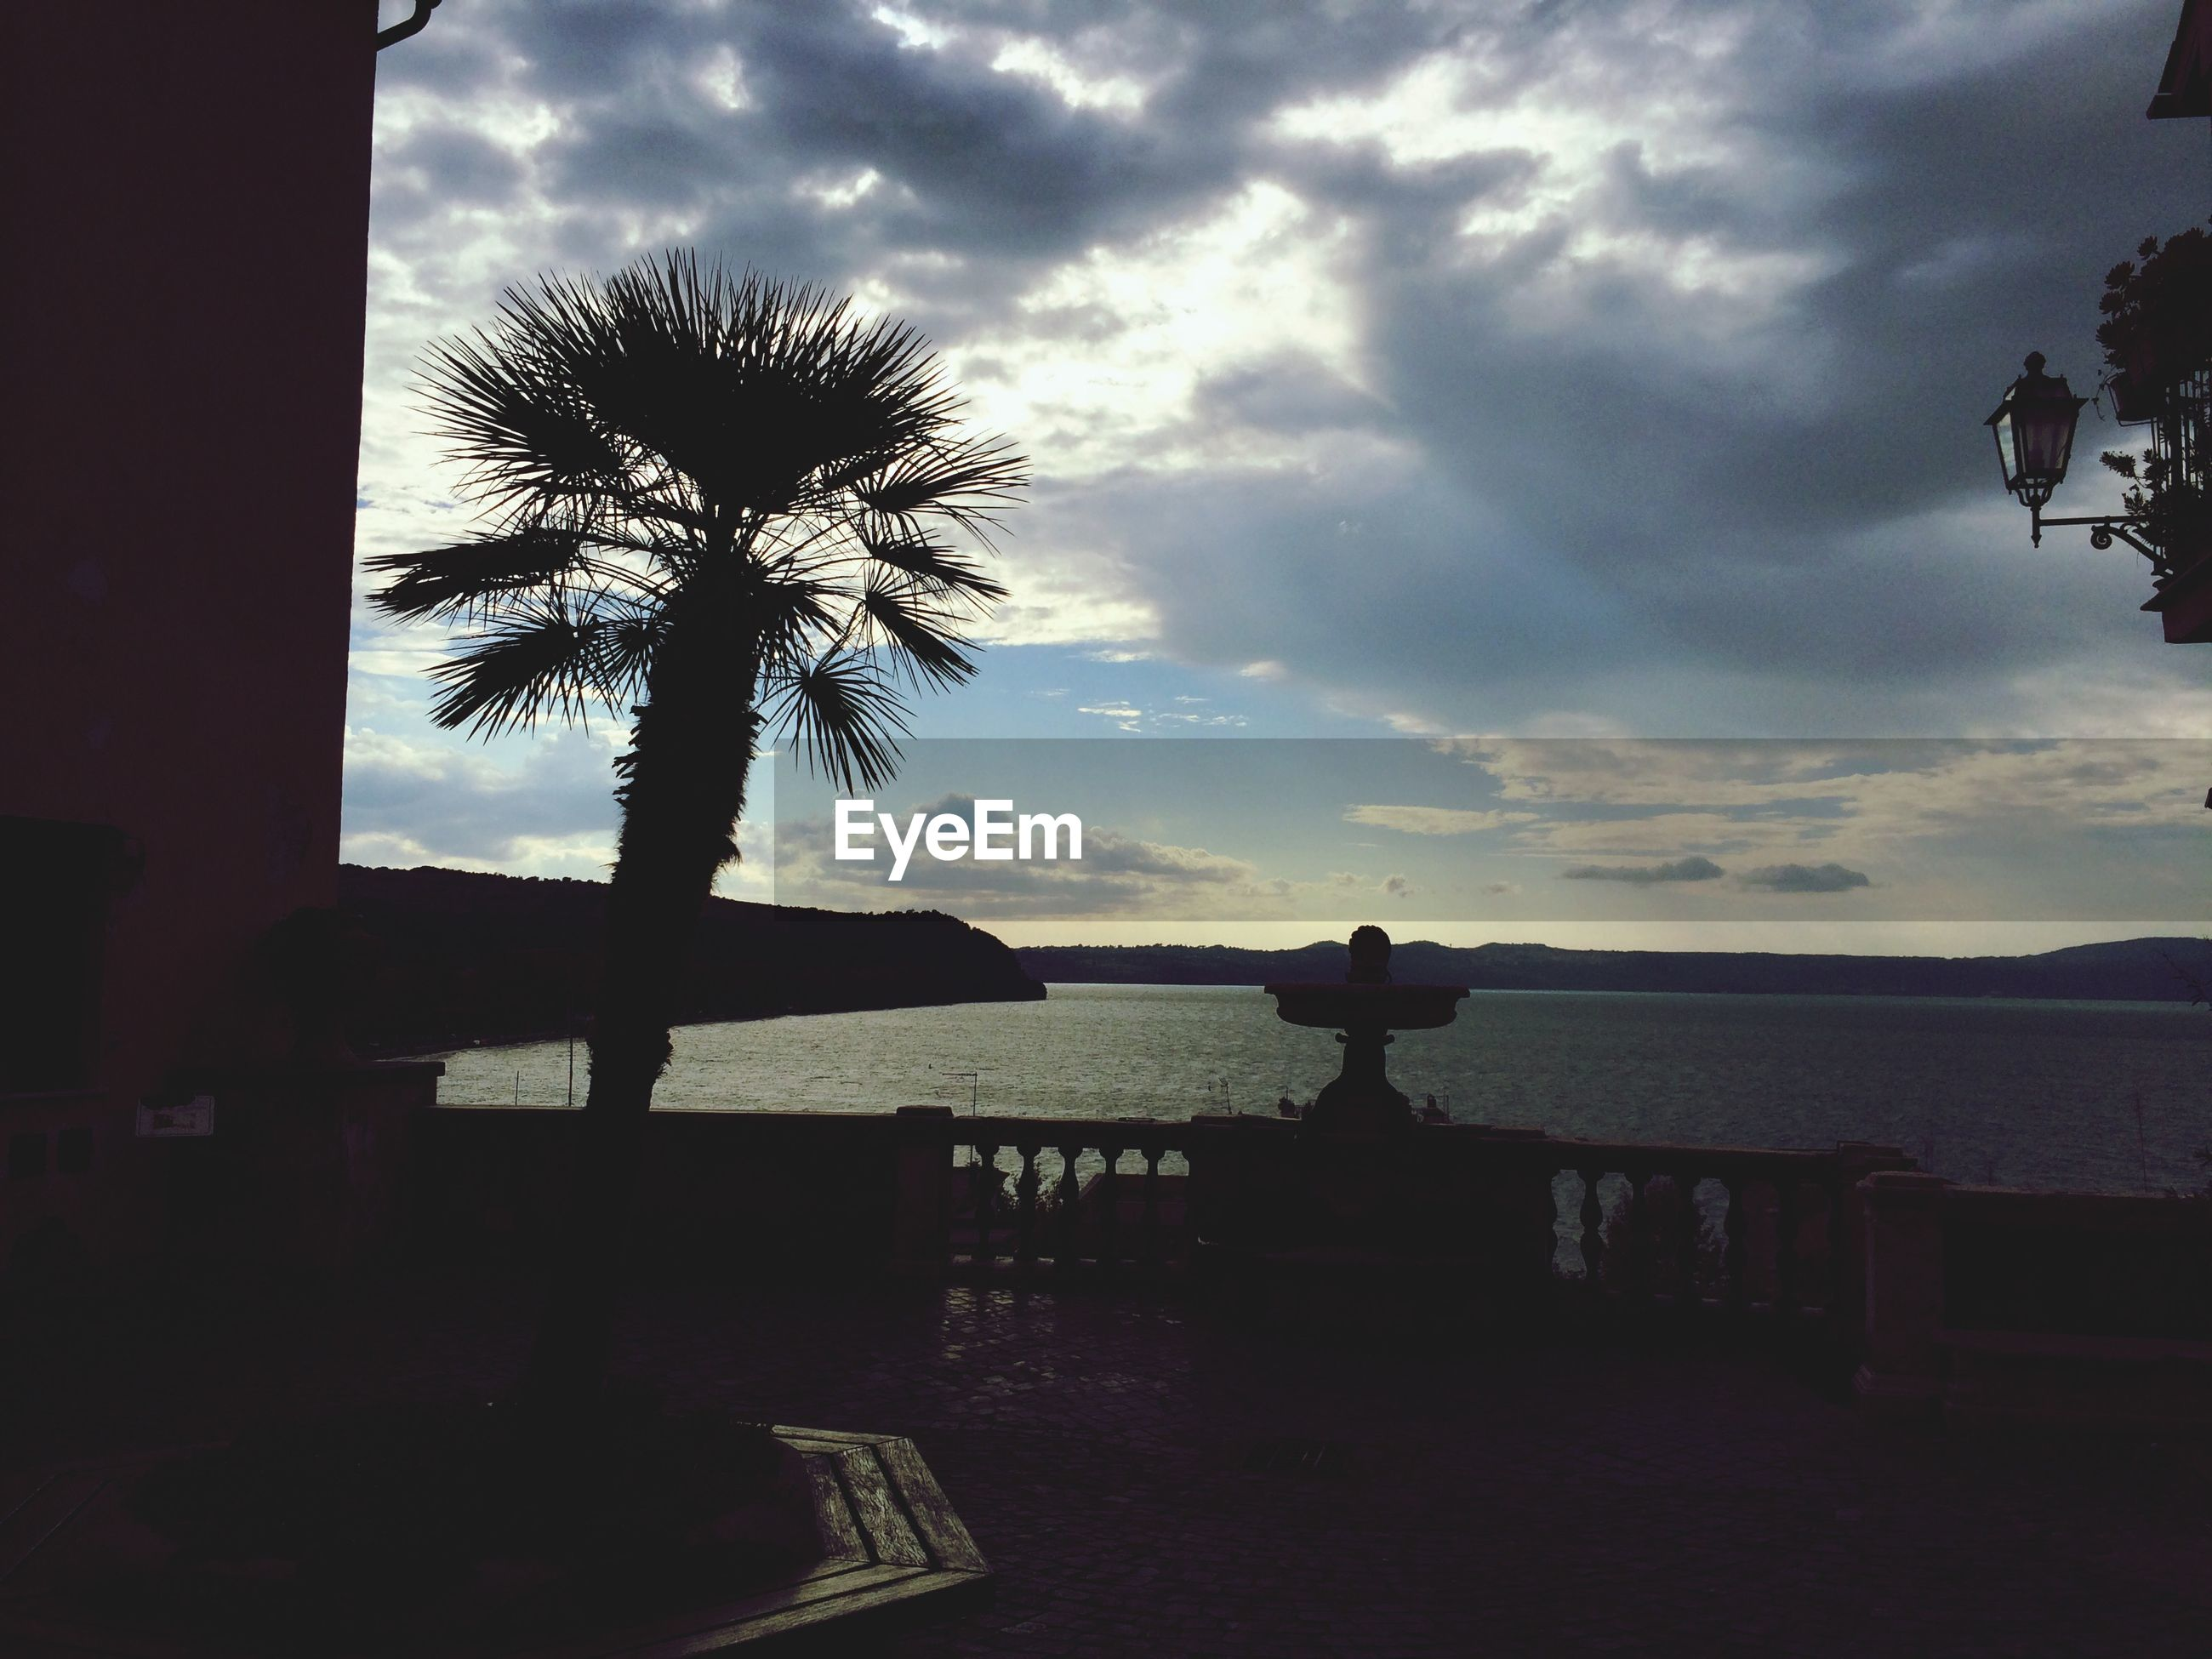 Silhouette date palm tree on balcony against cloudy sky at dusk